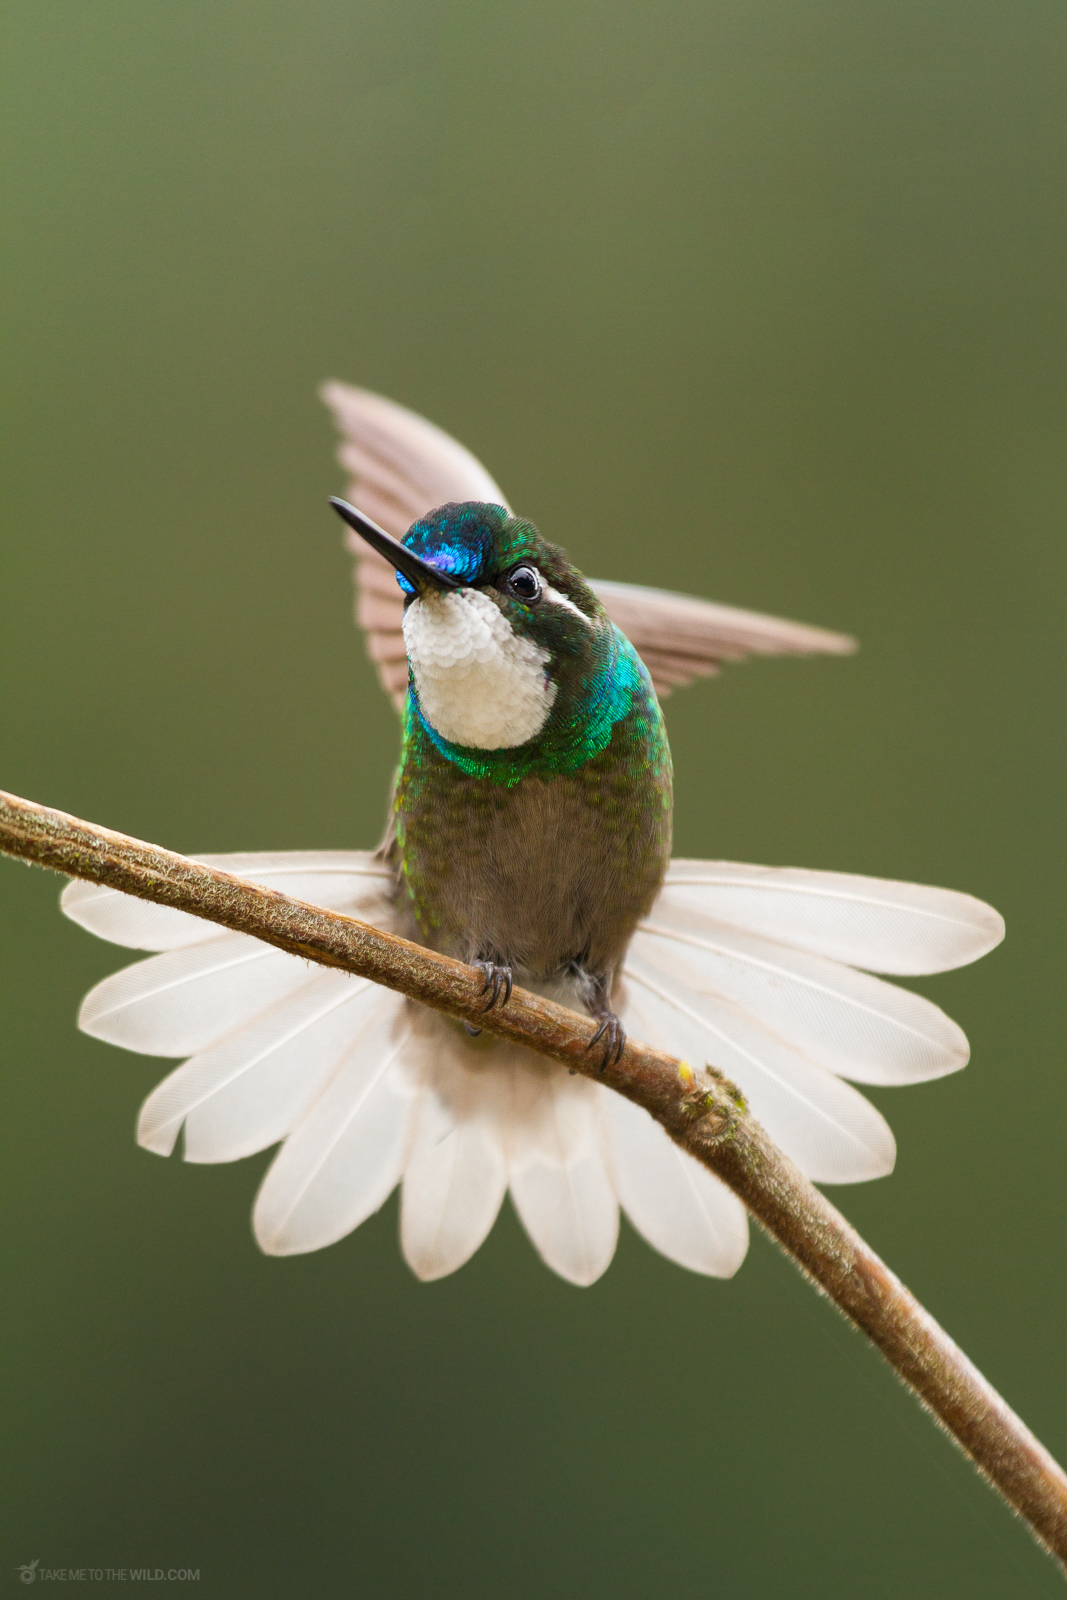 White-throated Mountaingem (Lampornis castaneoventris) perched on a branch at the highlands of Costa Rica